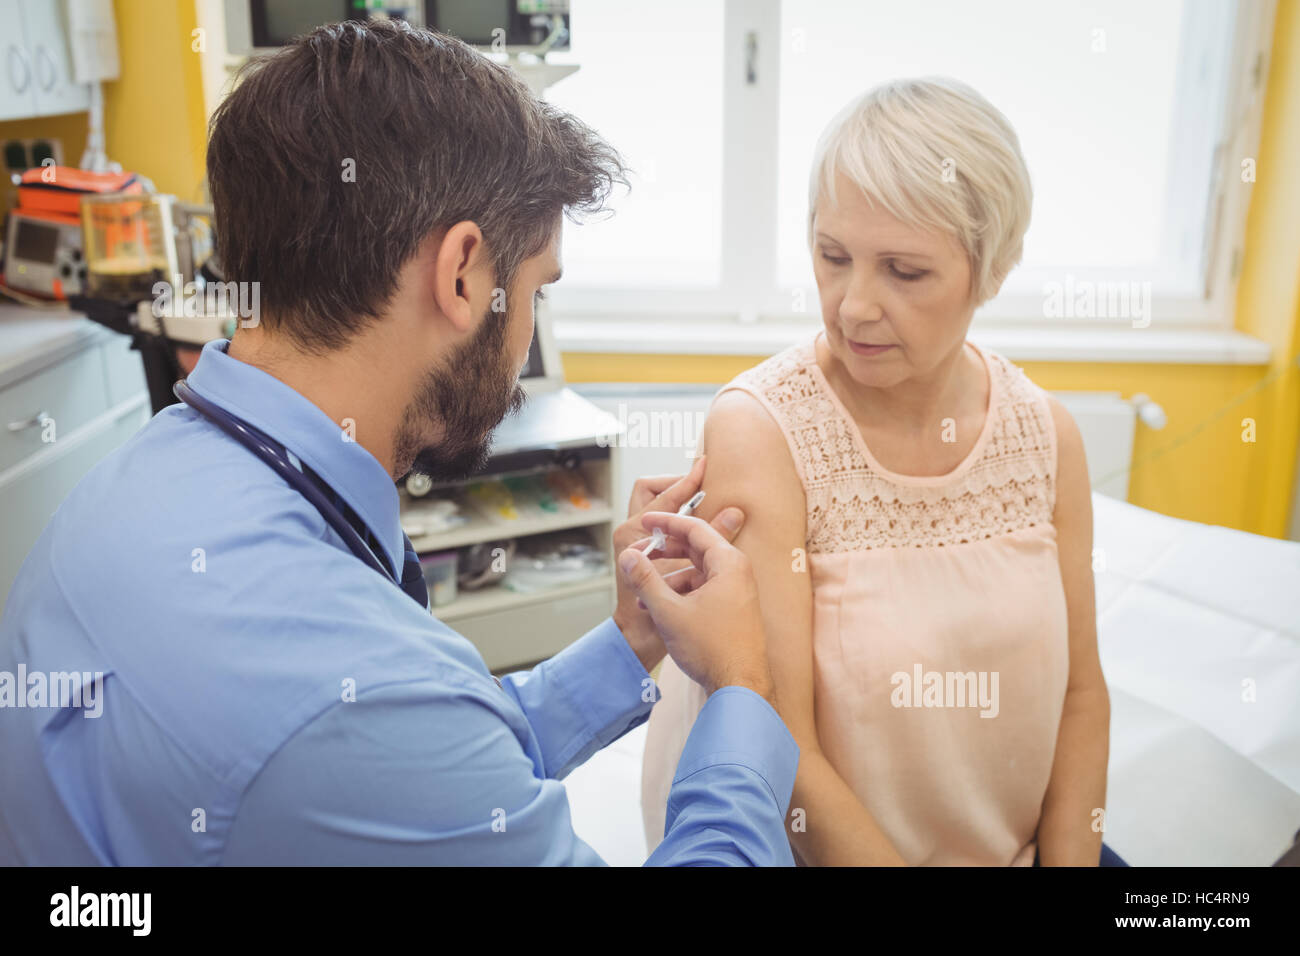 Male doctor giving an injection to a patient Stock Photo